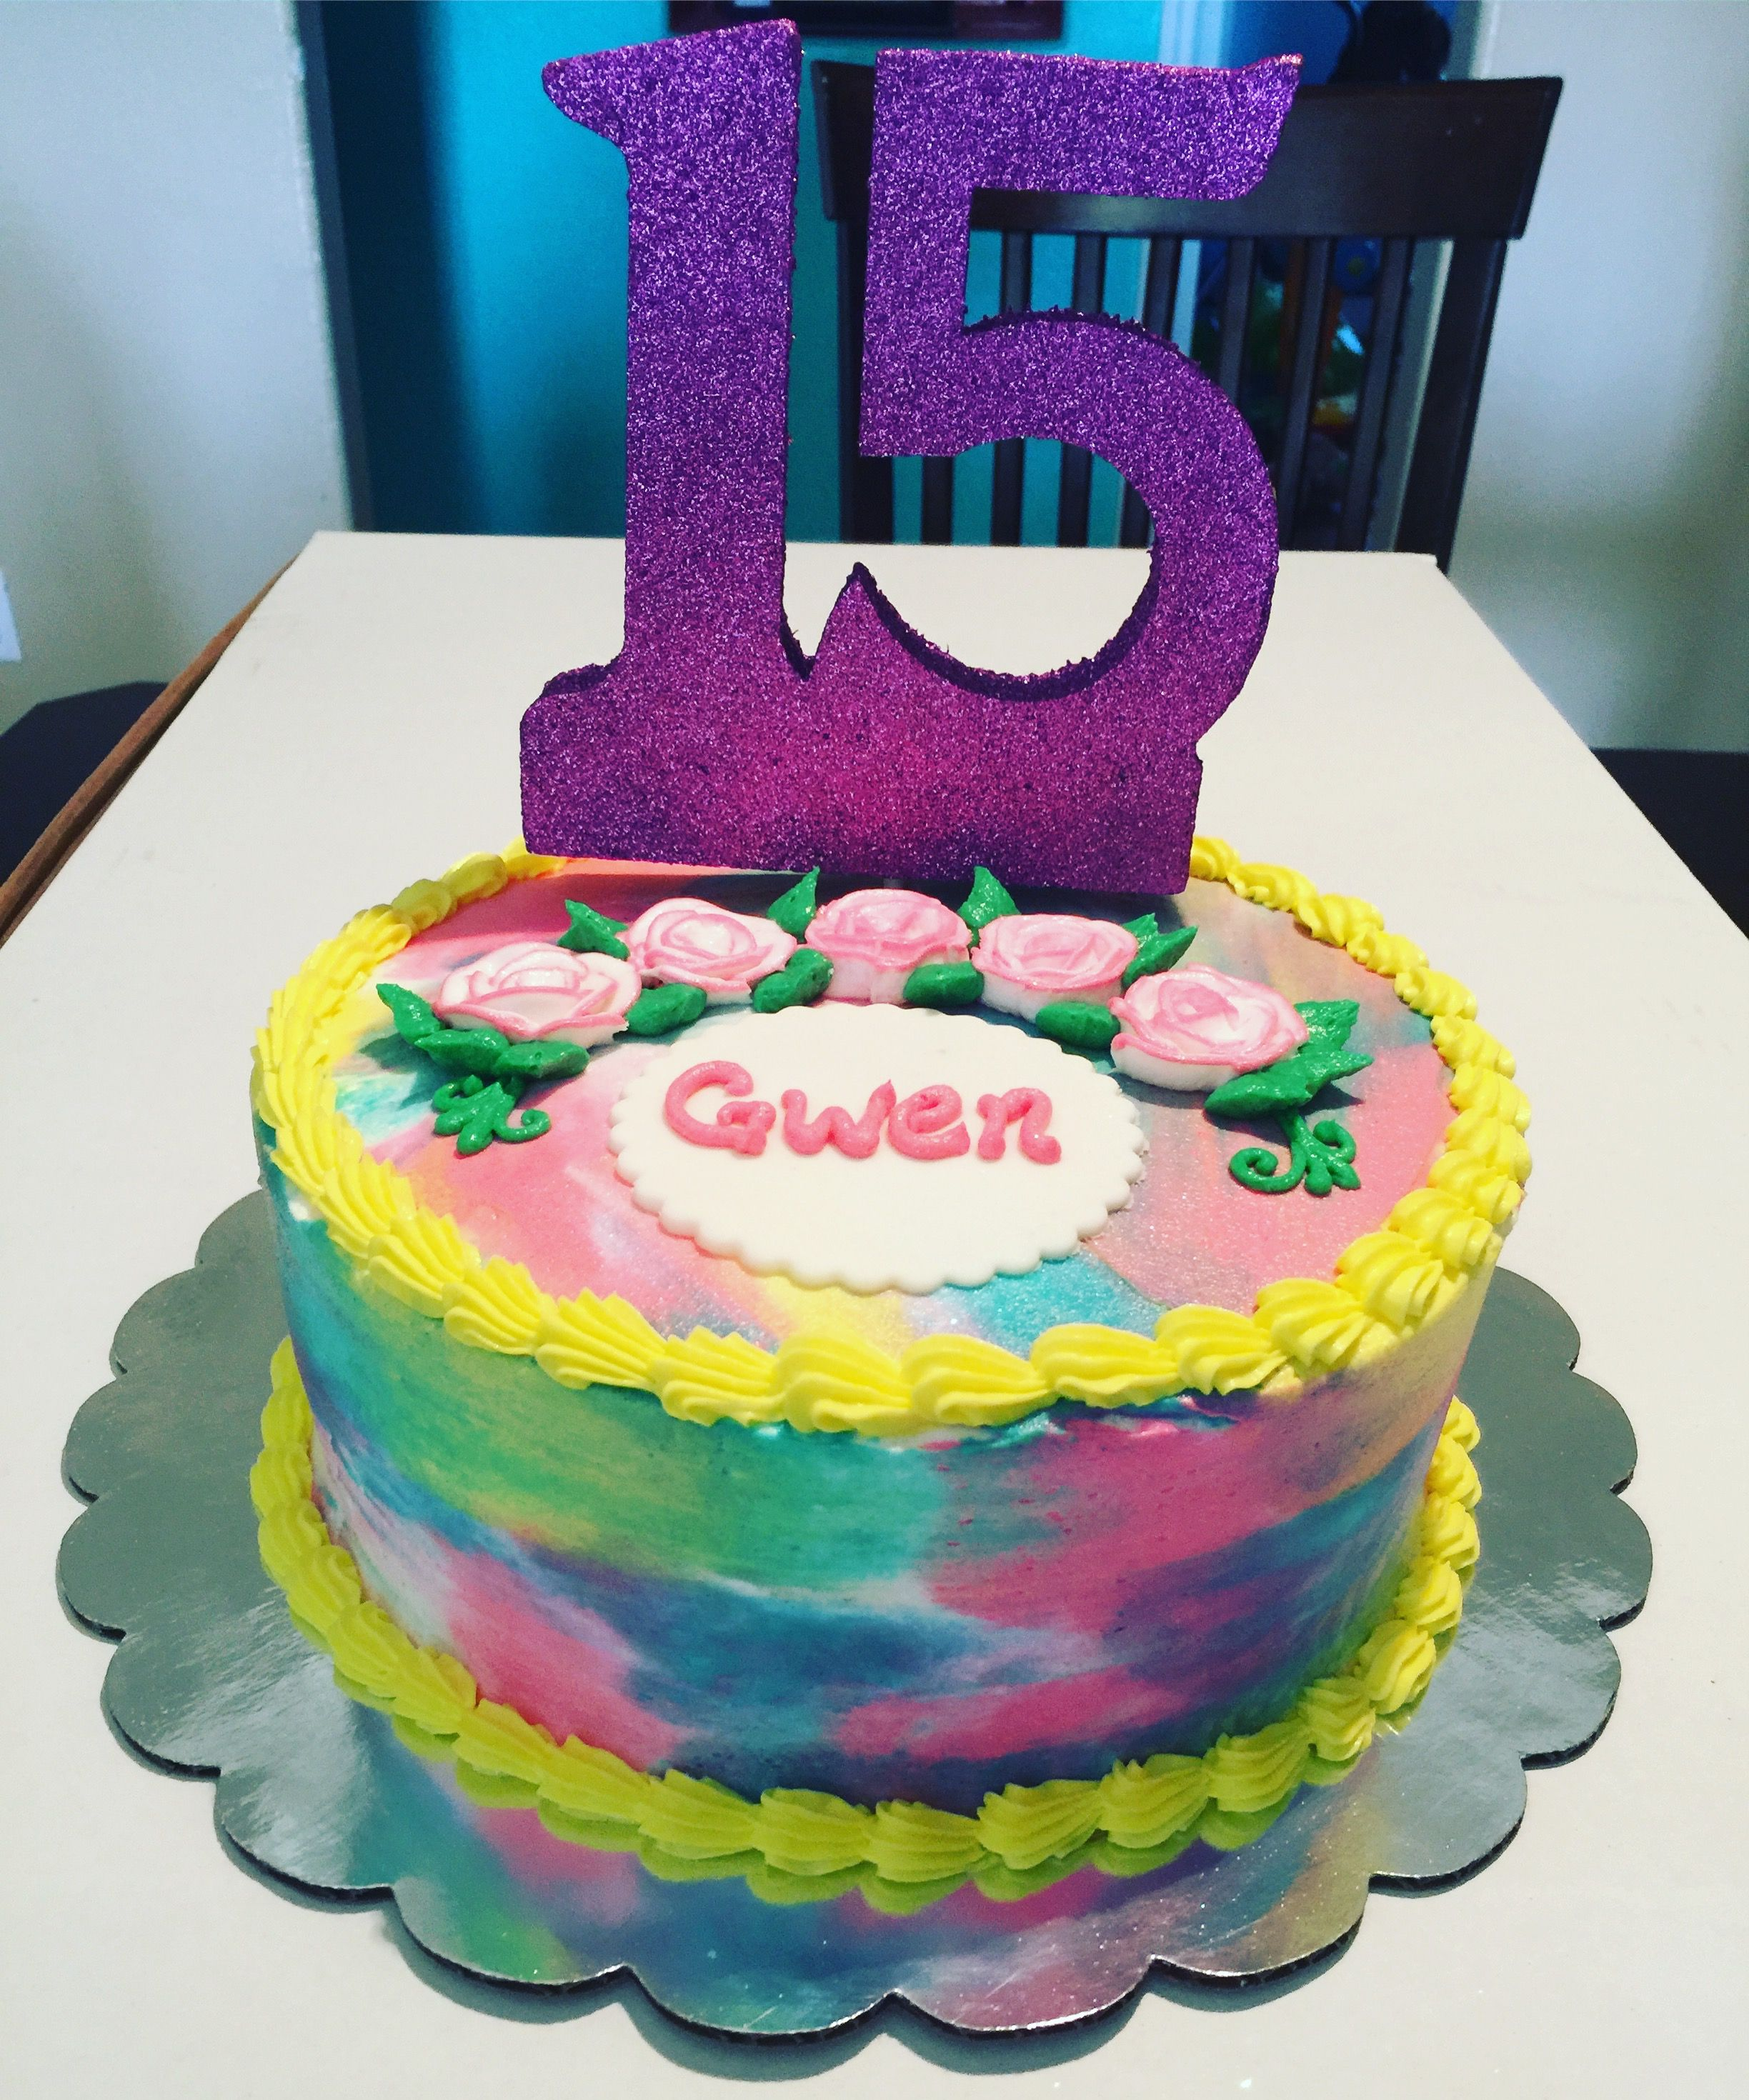 15 Birthday Cake Ideas Girl : birthday, ideas, Colorful, Buttercream, Frosted, Sweet, Birthday, Cakes,, Girls